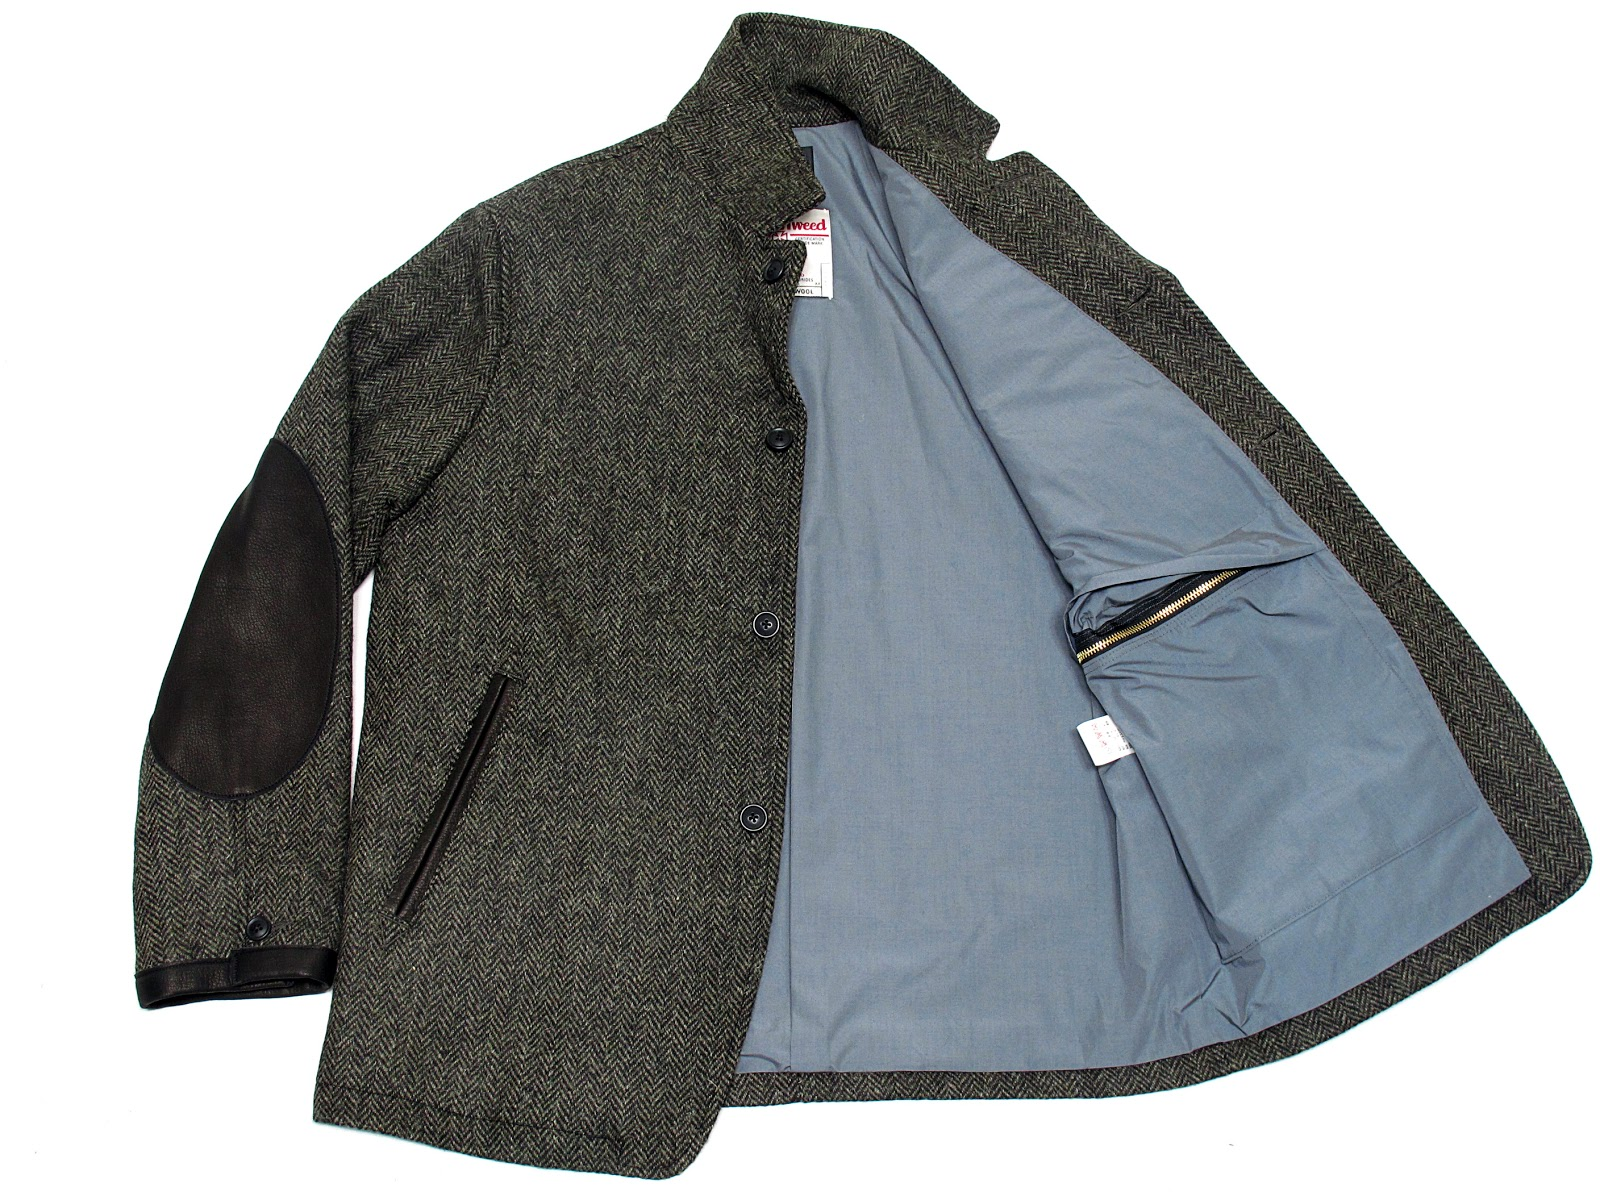 Nepenthes New York 「in Stock」needles Arrow Jacket In